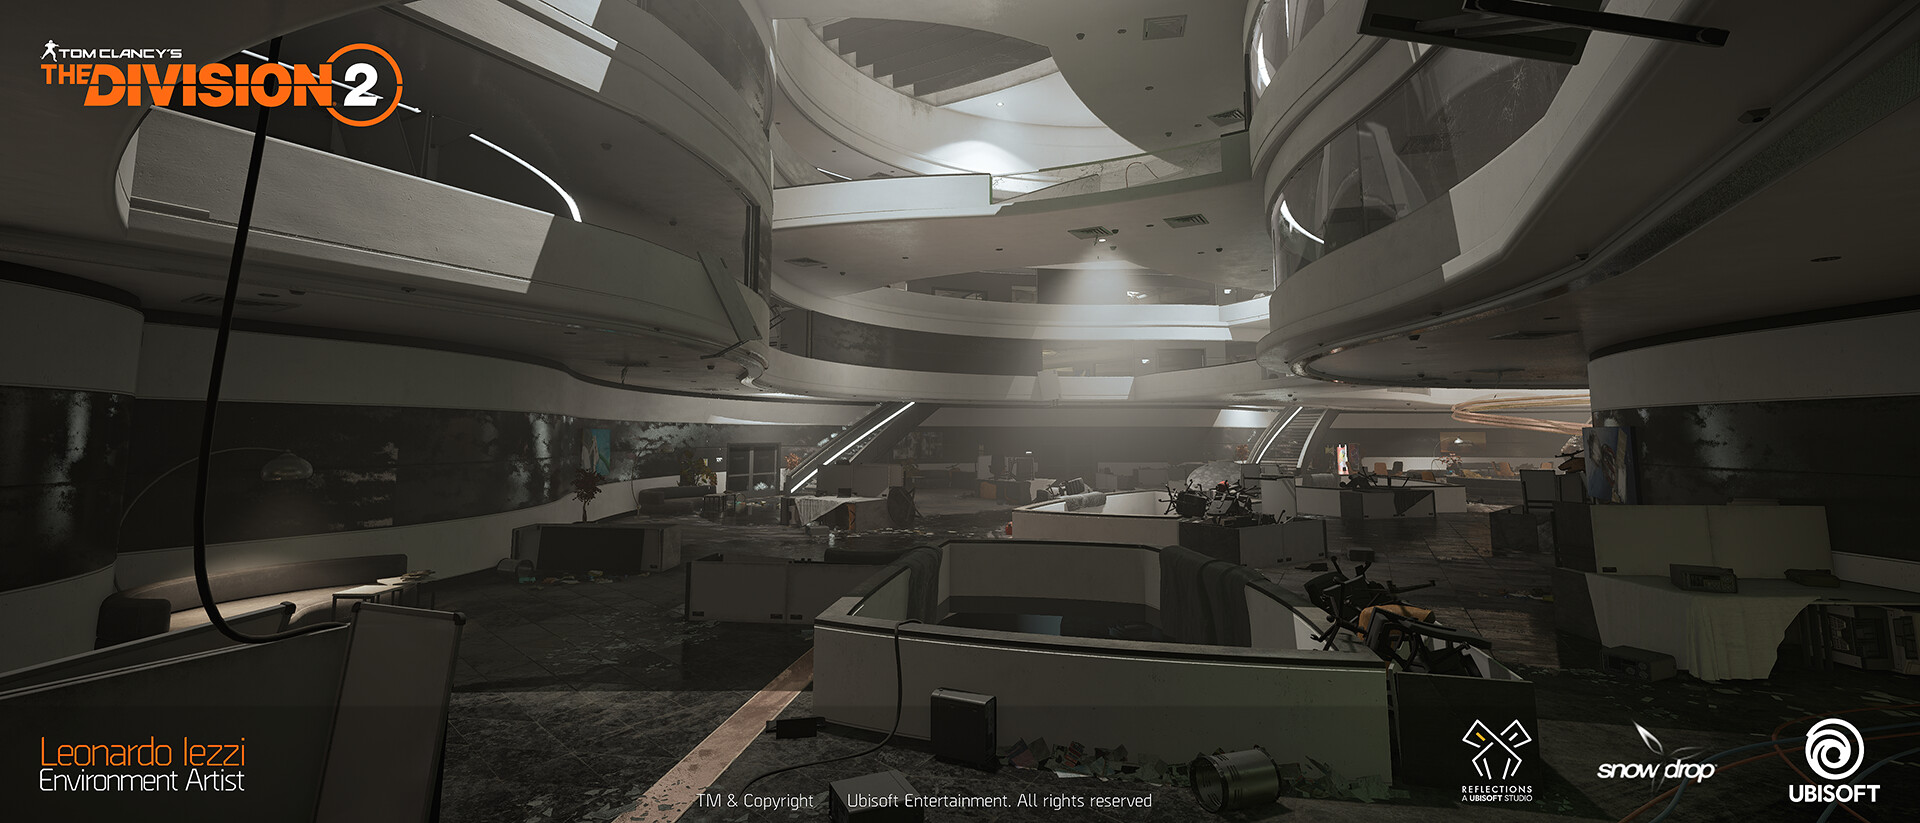 Leonardo iezzi leonardo iezzi the division 2 environment art 02 atrium 017 wide